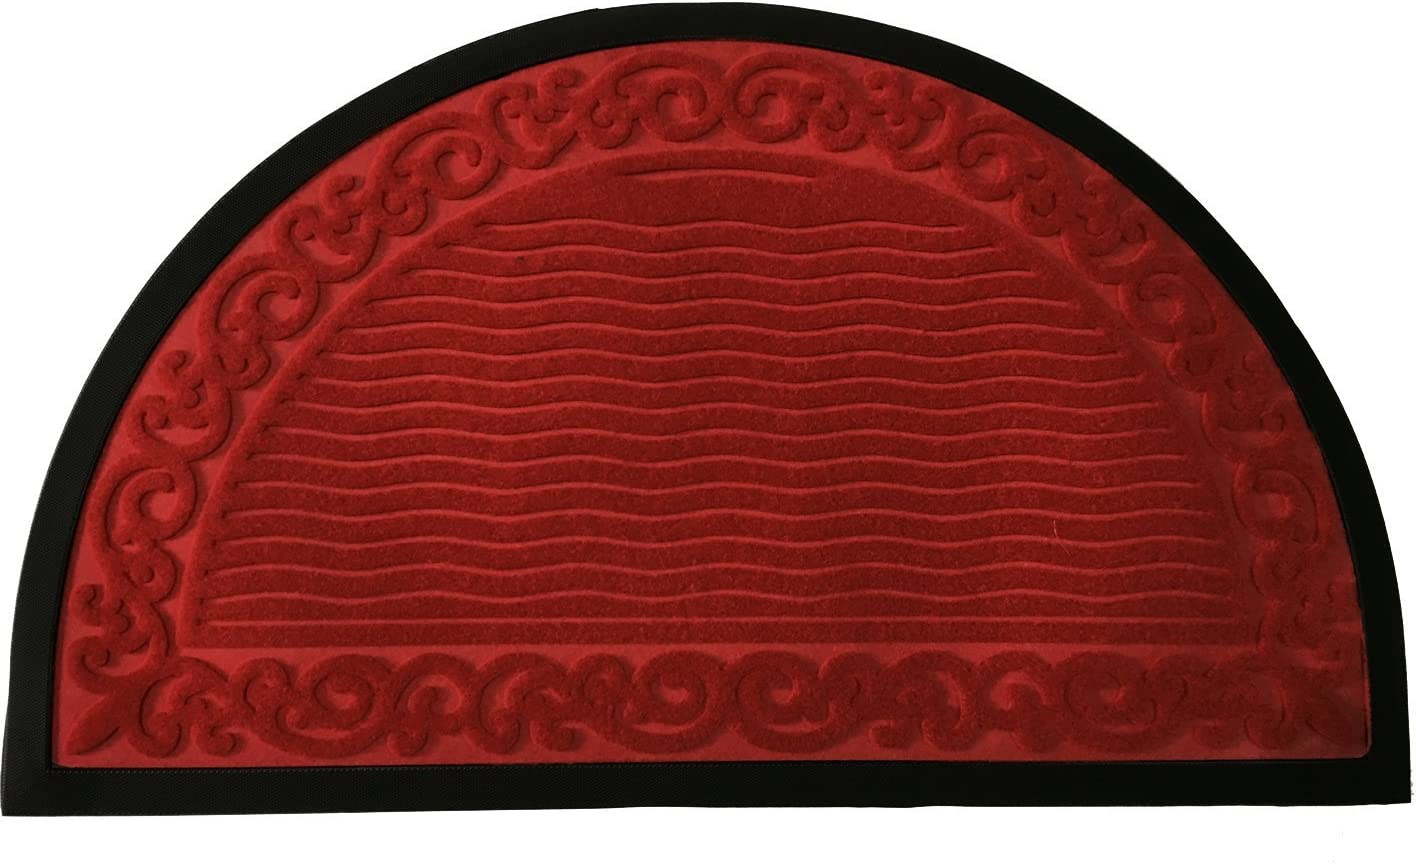 Half Round Door Mat Entrance Rug Floor Mats Ripple Pattern Mat Garage Entry Carpet Decor for House Patio Grass Water 1830-inch Semi-circle – Red